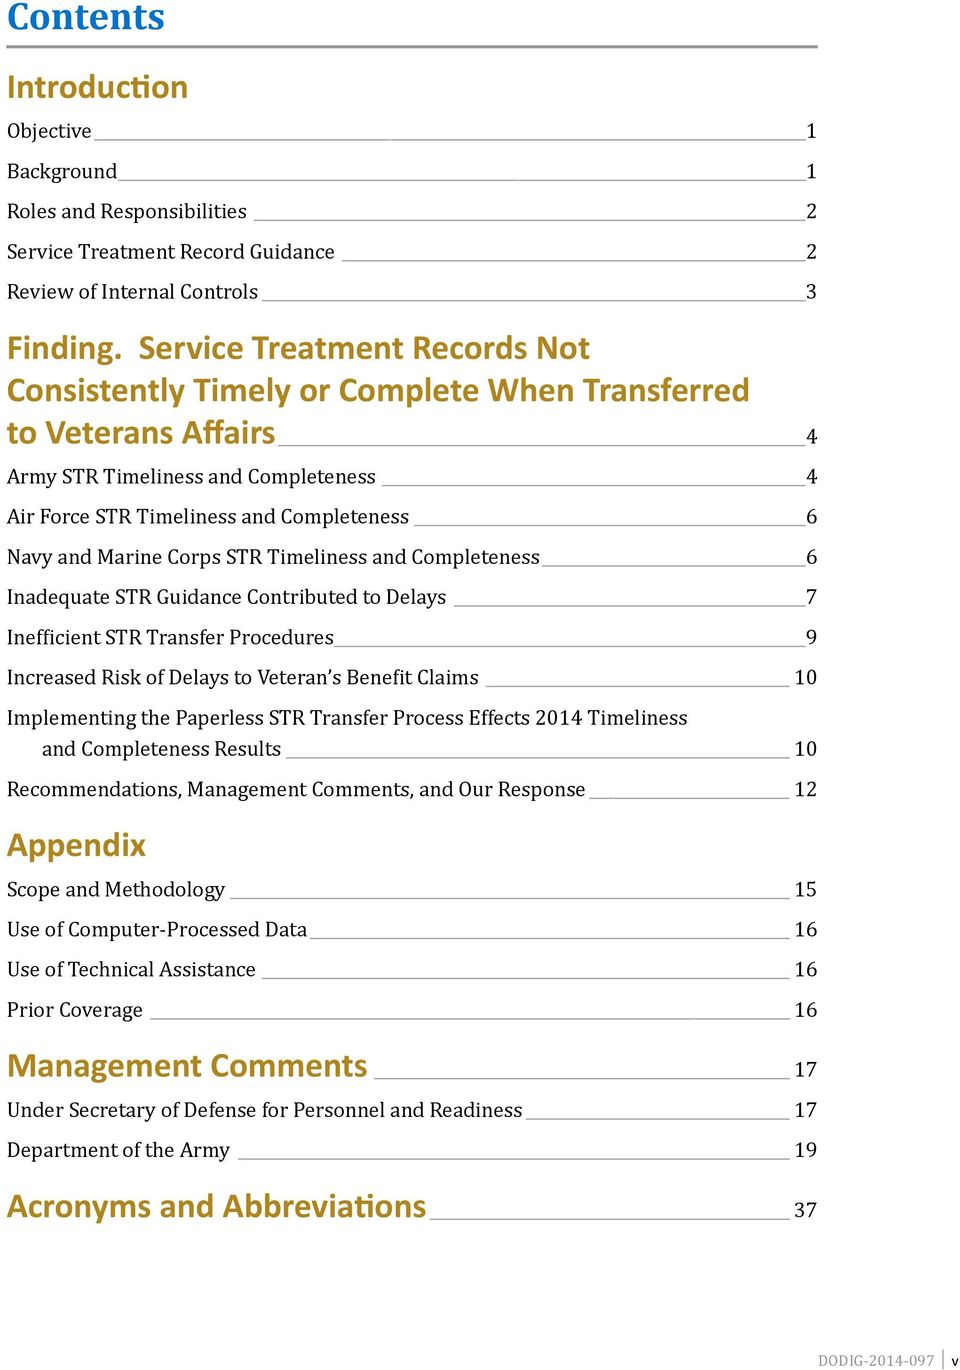 Corps STR Timeliness and Completeness 6 Inadequate STR Guidance Contributed to Delays 7 Inefficient STR Transfer Procedures 9 Increased Risk of Delays to Veteran s Benefit Claims 10 Implementing the